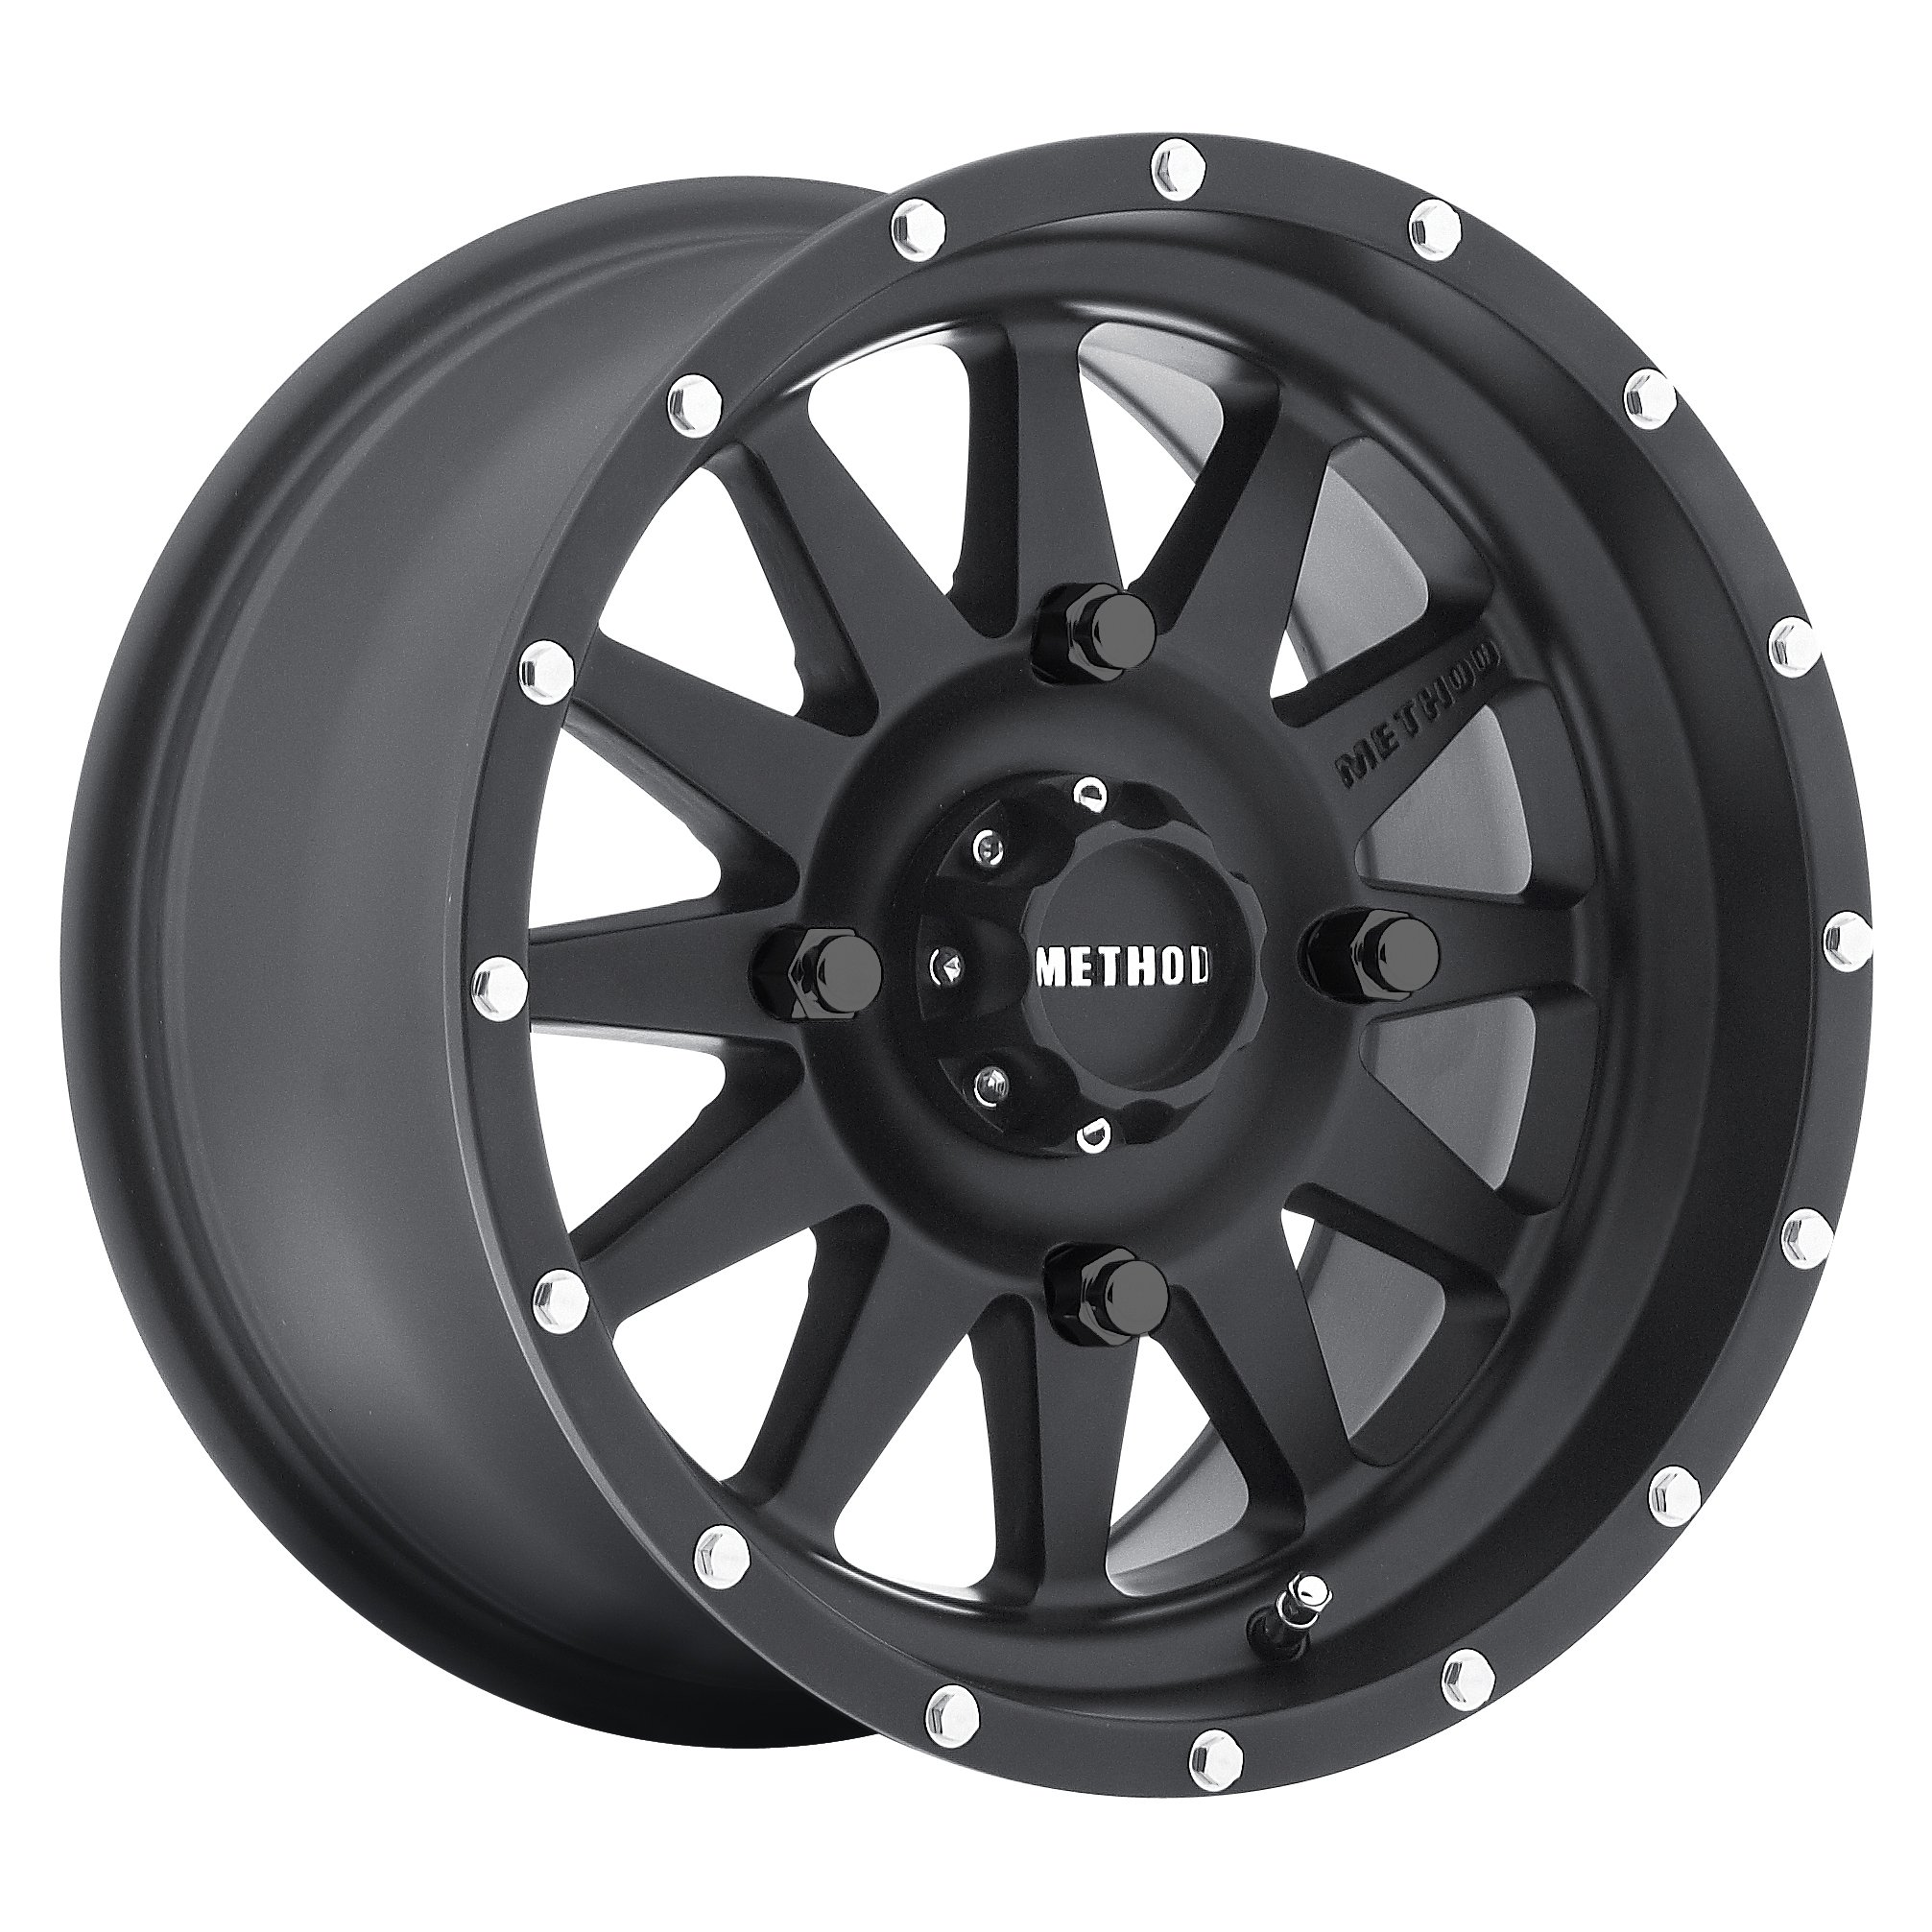 Method Race Wheels The Standard Matte Black Wheel with Stainless Steel Accent Bolts (12x7''/4x156mm) 13 mm offset